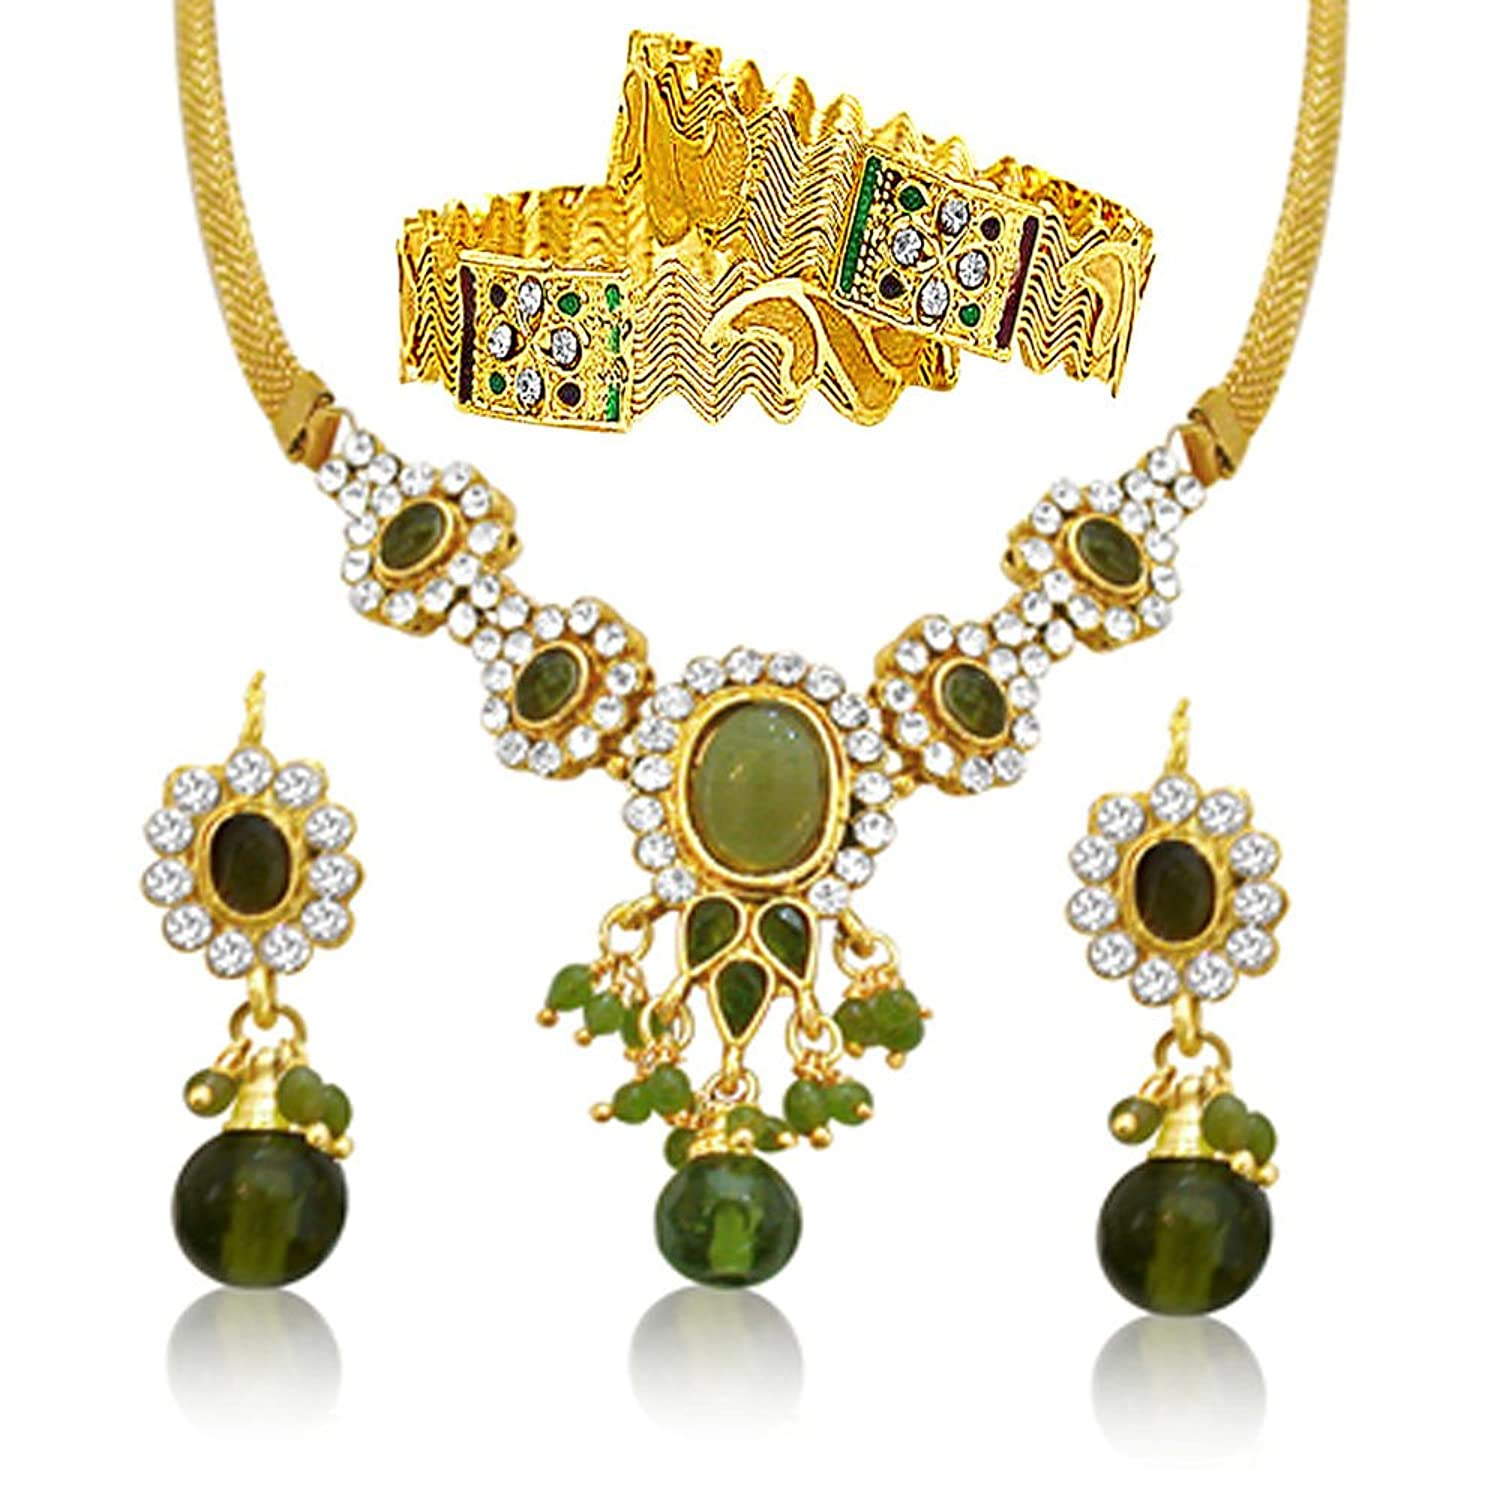 india on by fashion and jewelry jewel pinterest kumar santosh gold pin jewellery indian